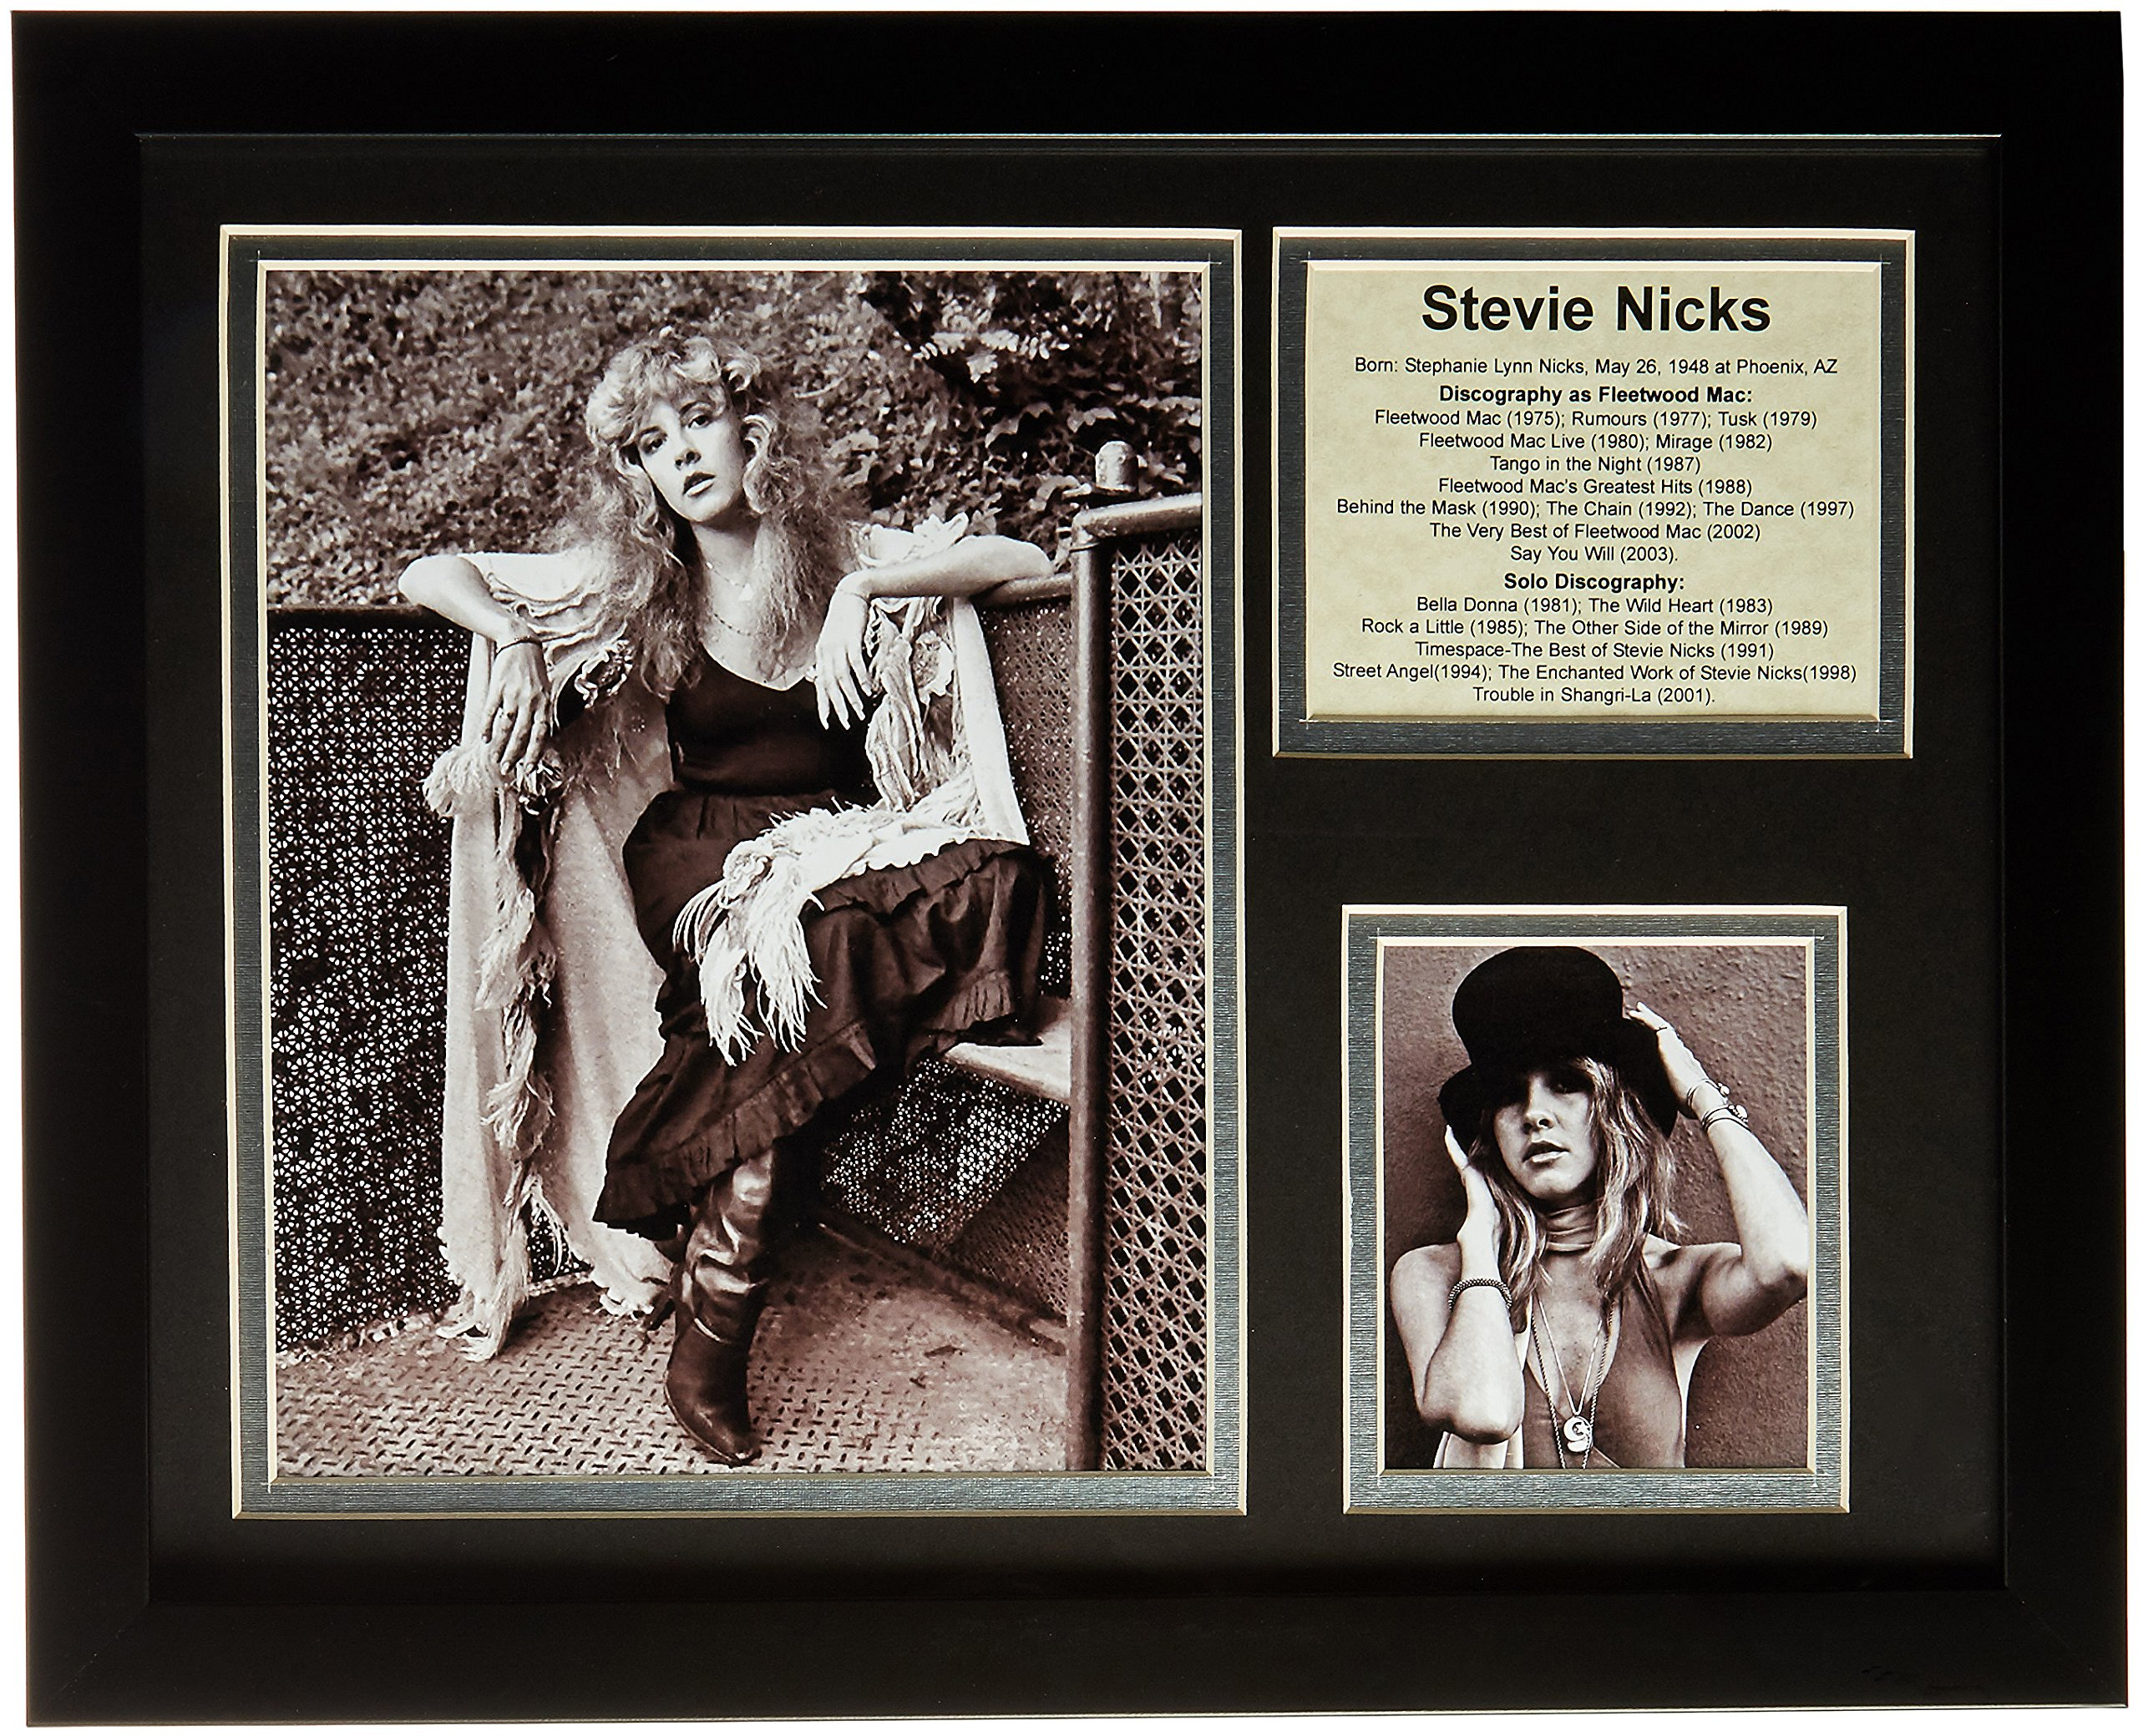 Legends Never Die Stevie Nicks Framed Photo Collage, 11 by 14-Inch